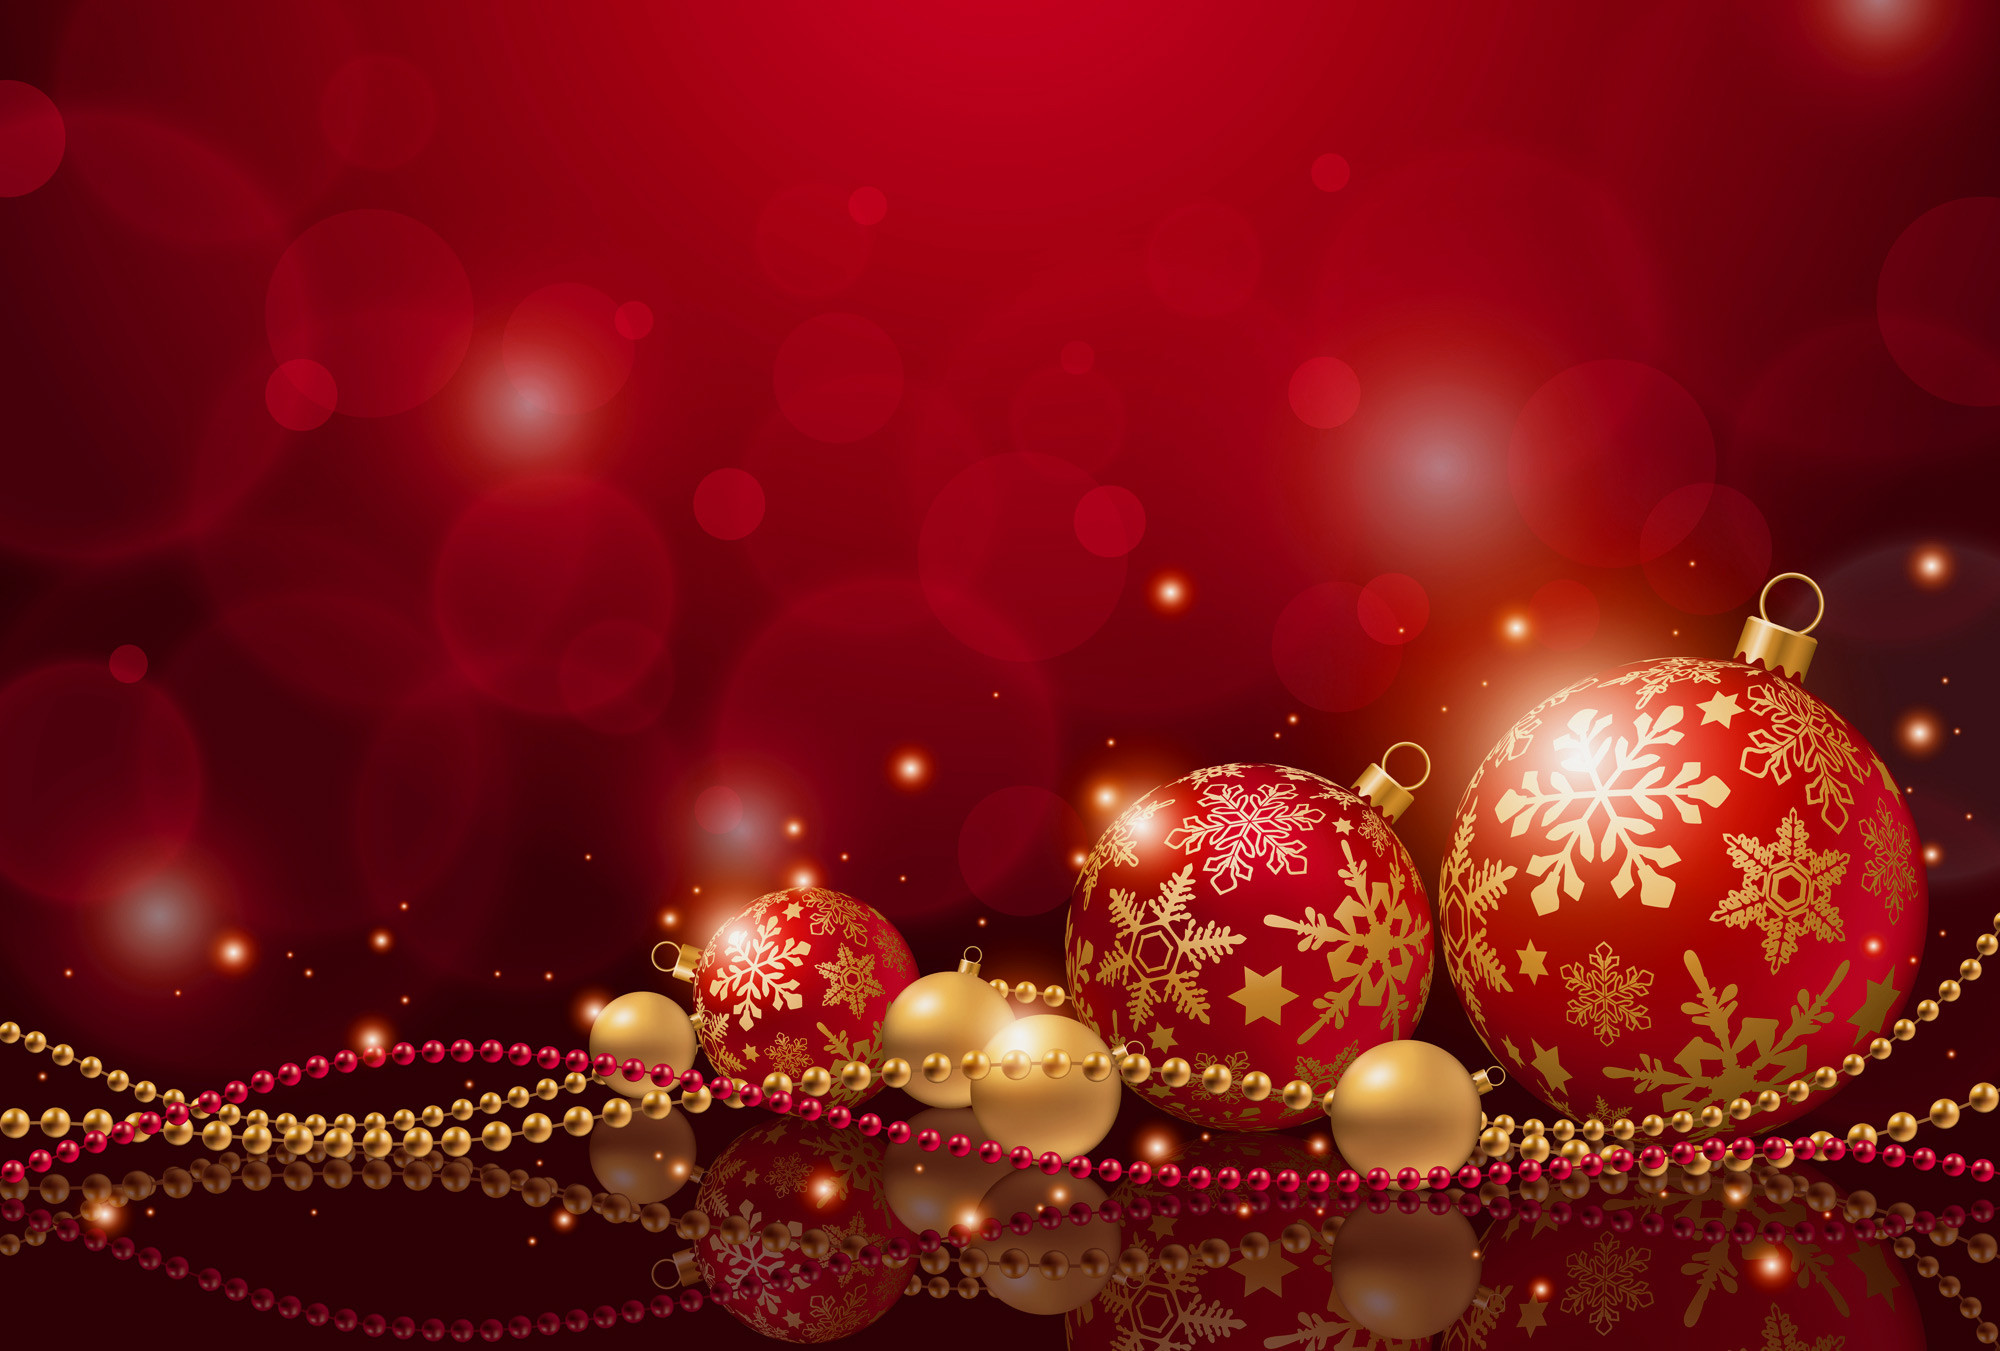 Christmas Backgrounds for Computers 49 images 2000x1351